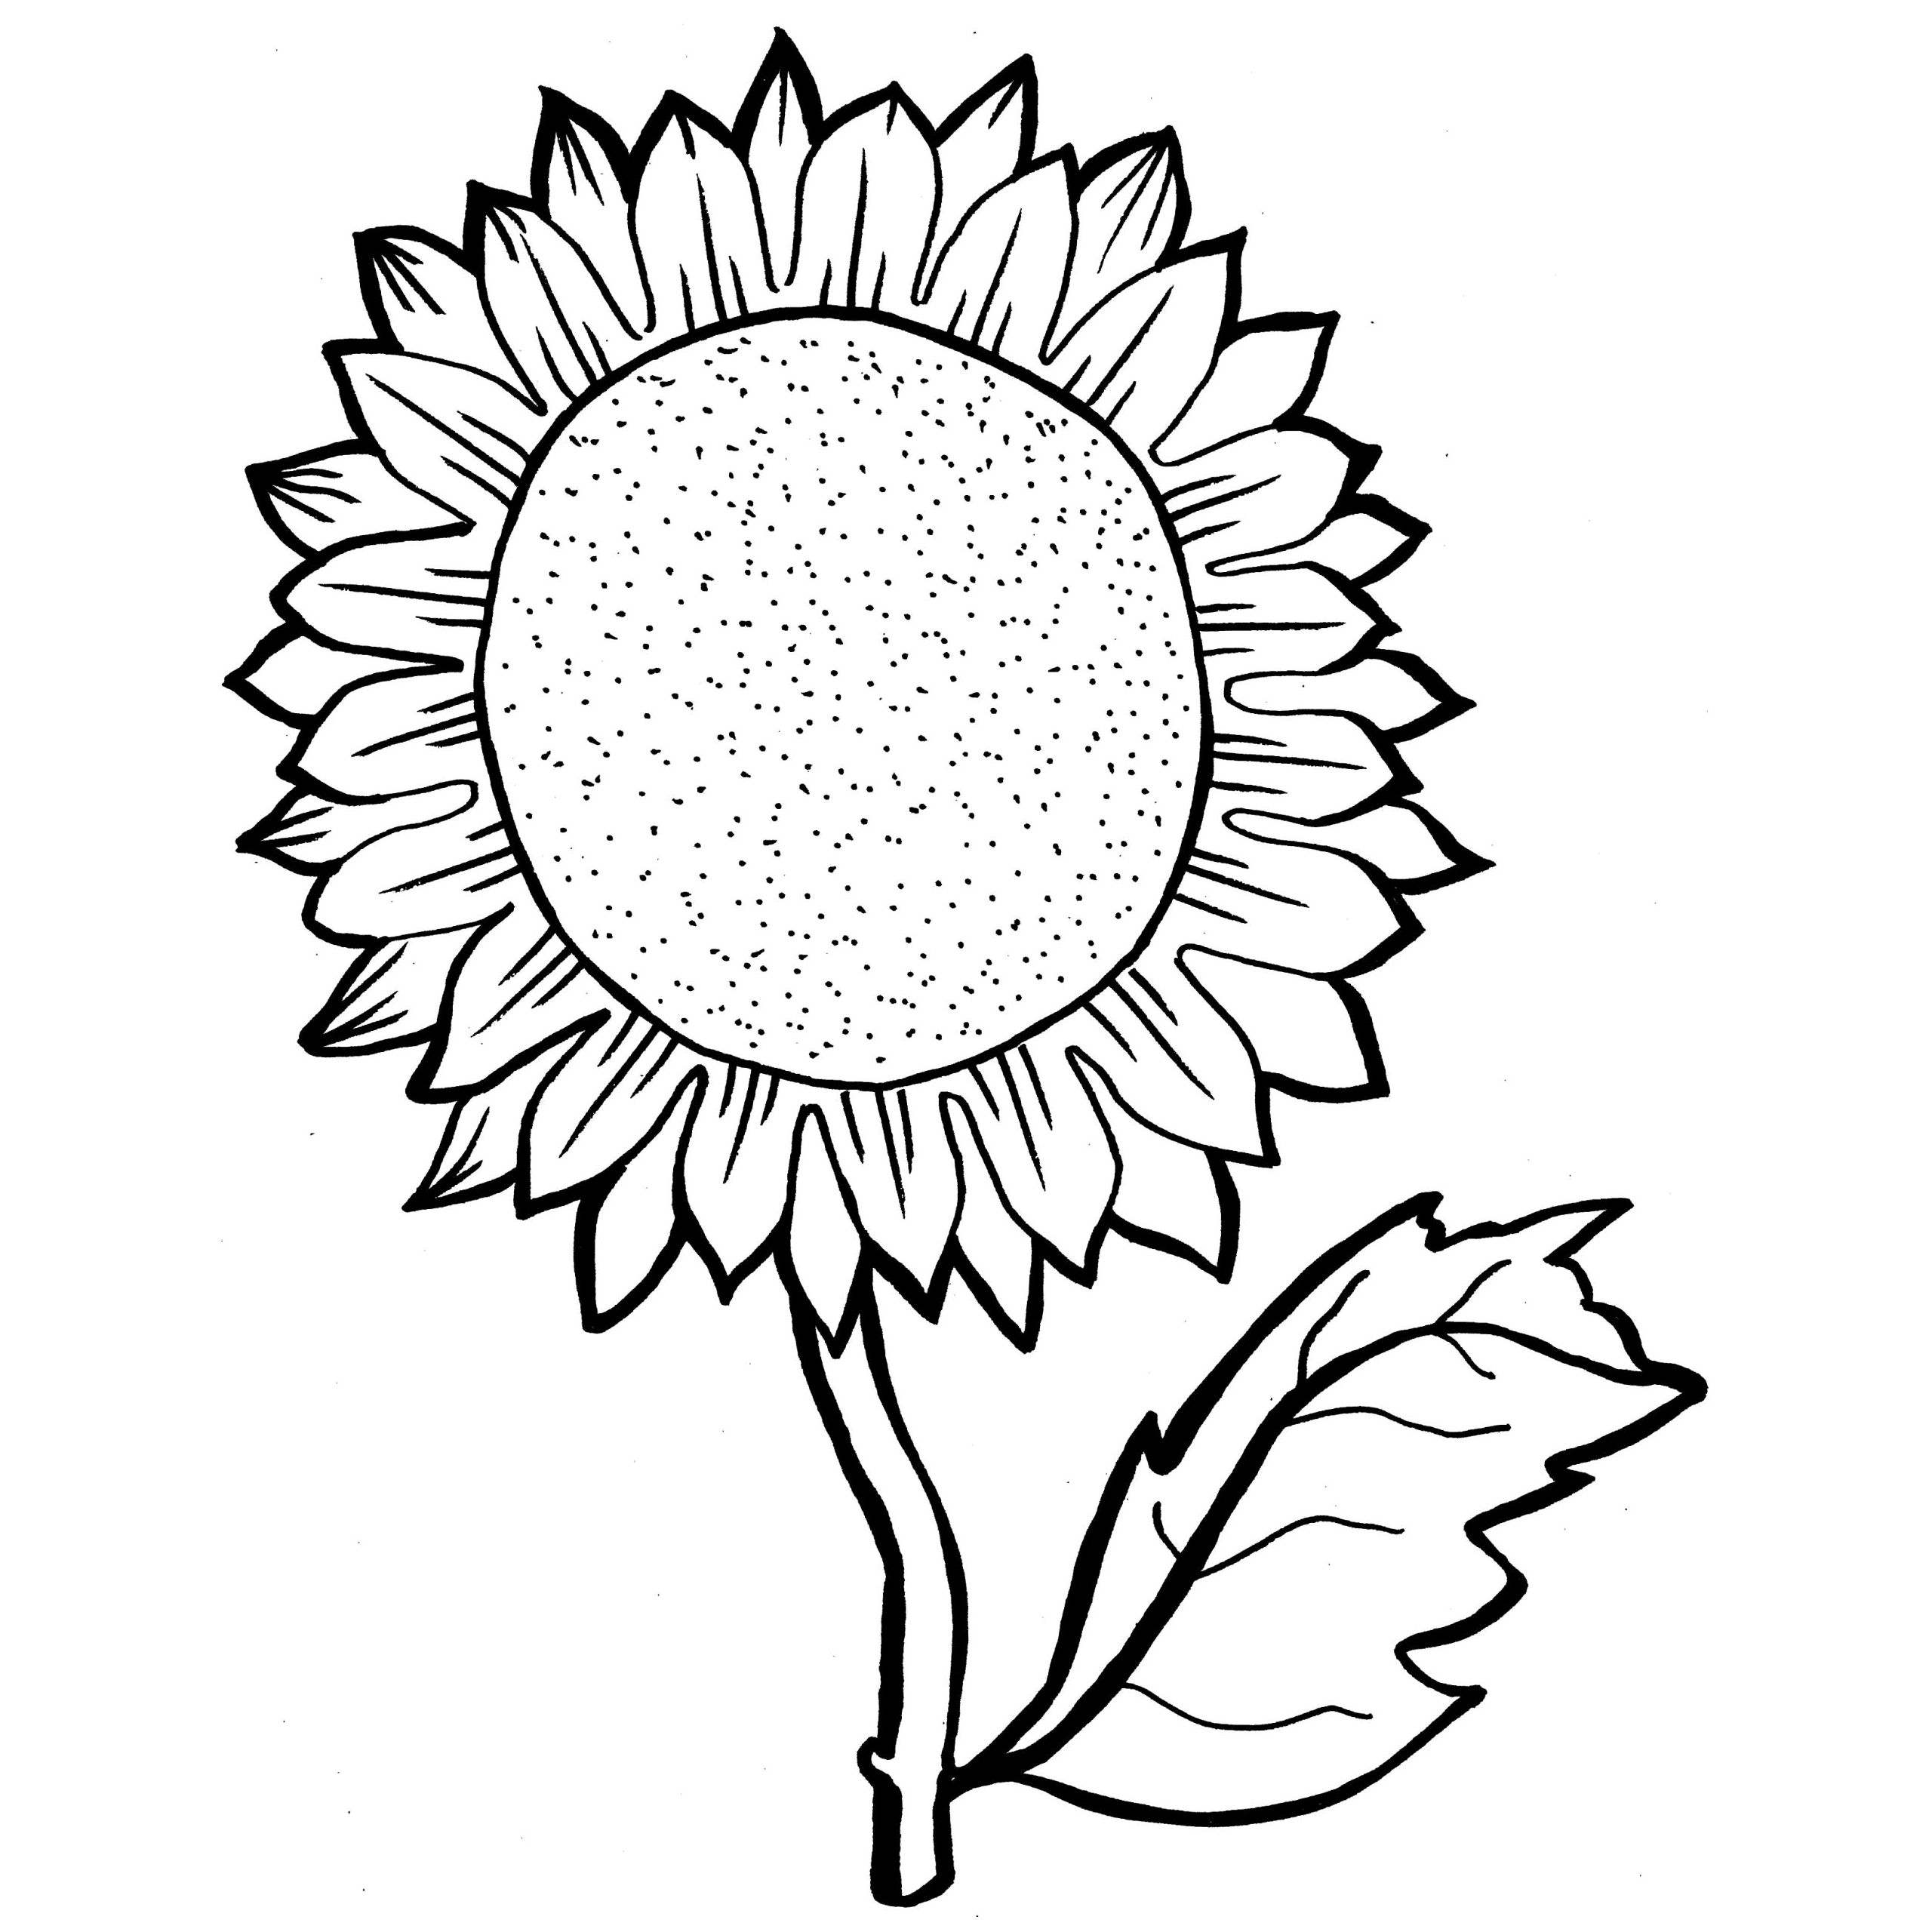 coloring pictures of sunflowers sunflower coloring page at getdrawings free download coloring pictures of sunflowers